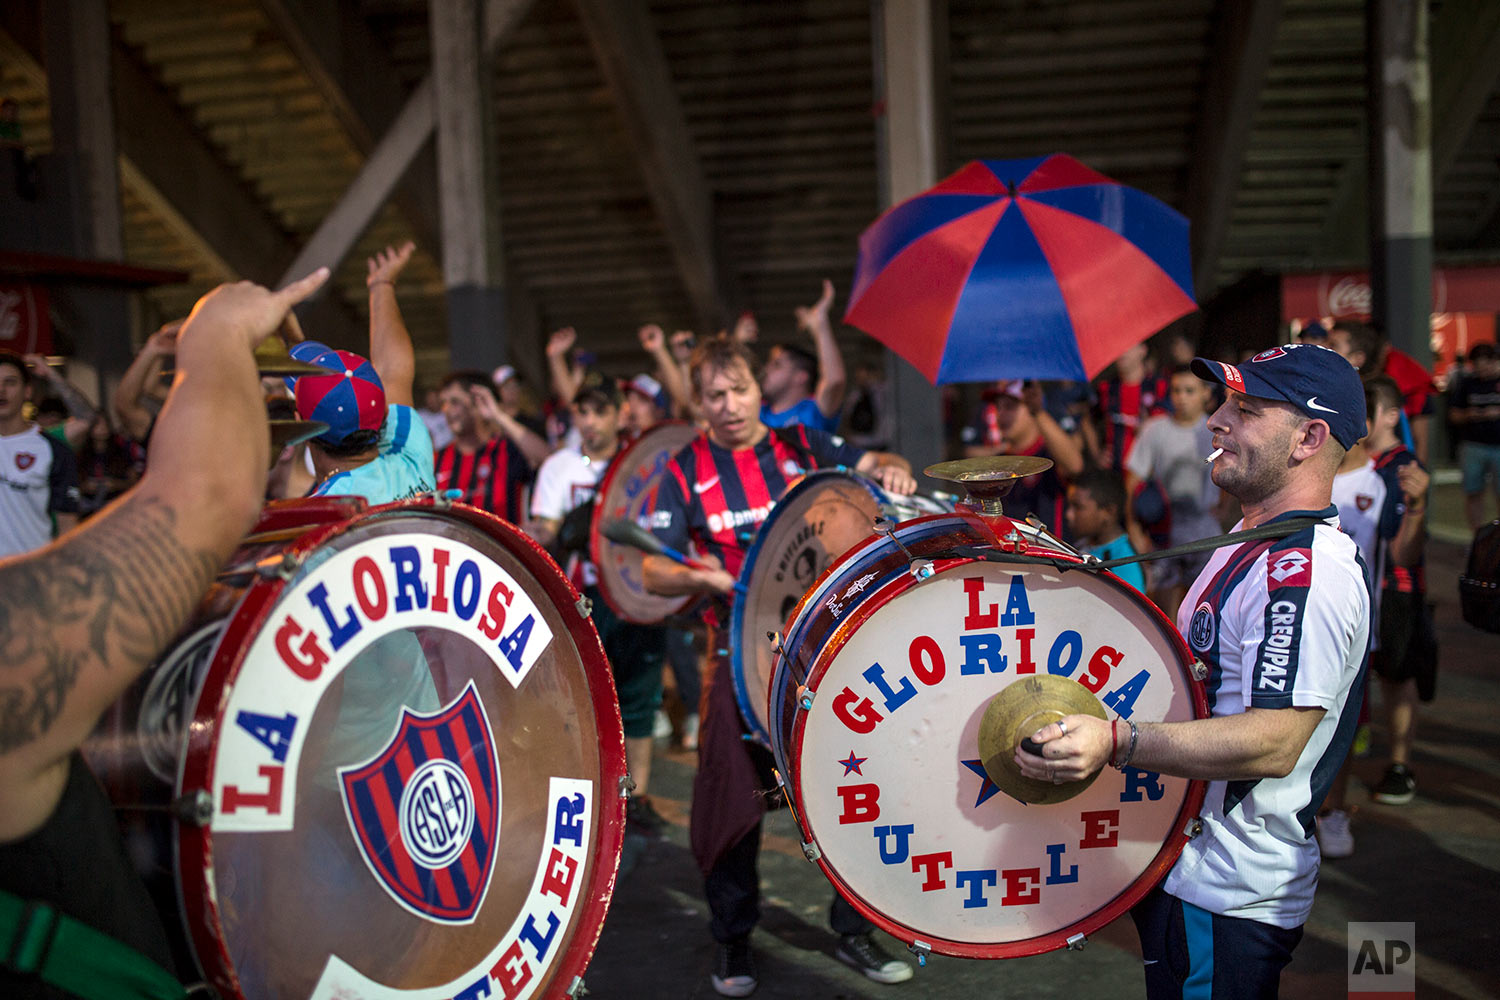 """In this April 11, 2018 photo, musicians and members of the San Lorenzo soccer team's most militant fan base, coined """"La Butteler,"""" play songs to support their team minutes before the start of a match against Godoy Cruz in Buenos Aires, Argentina. (AP Photo/Rodrigo Abd)"""